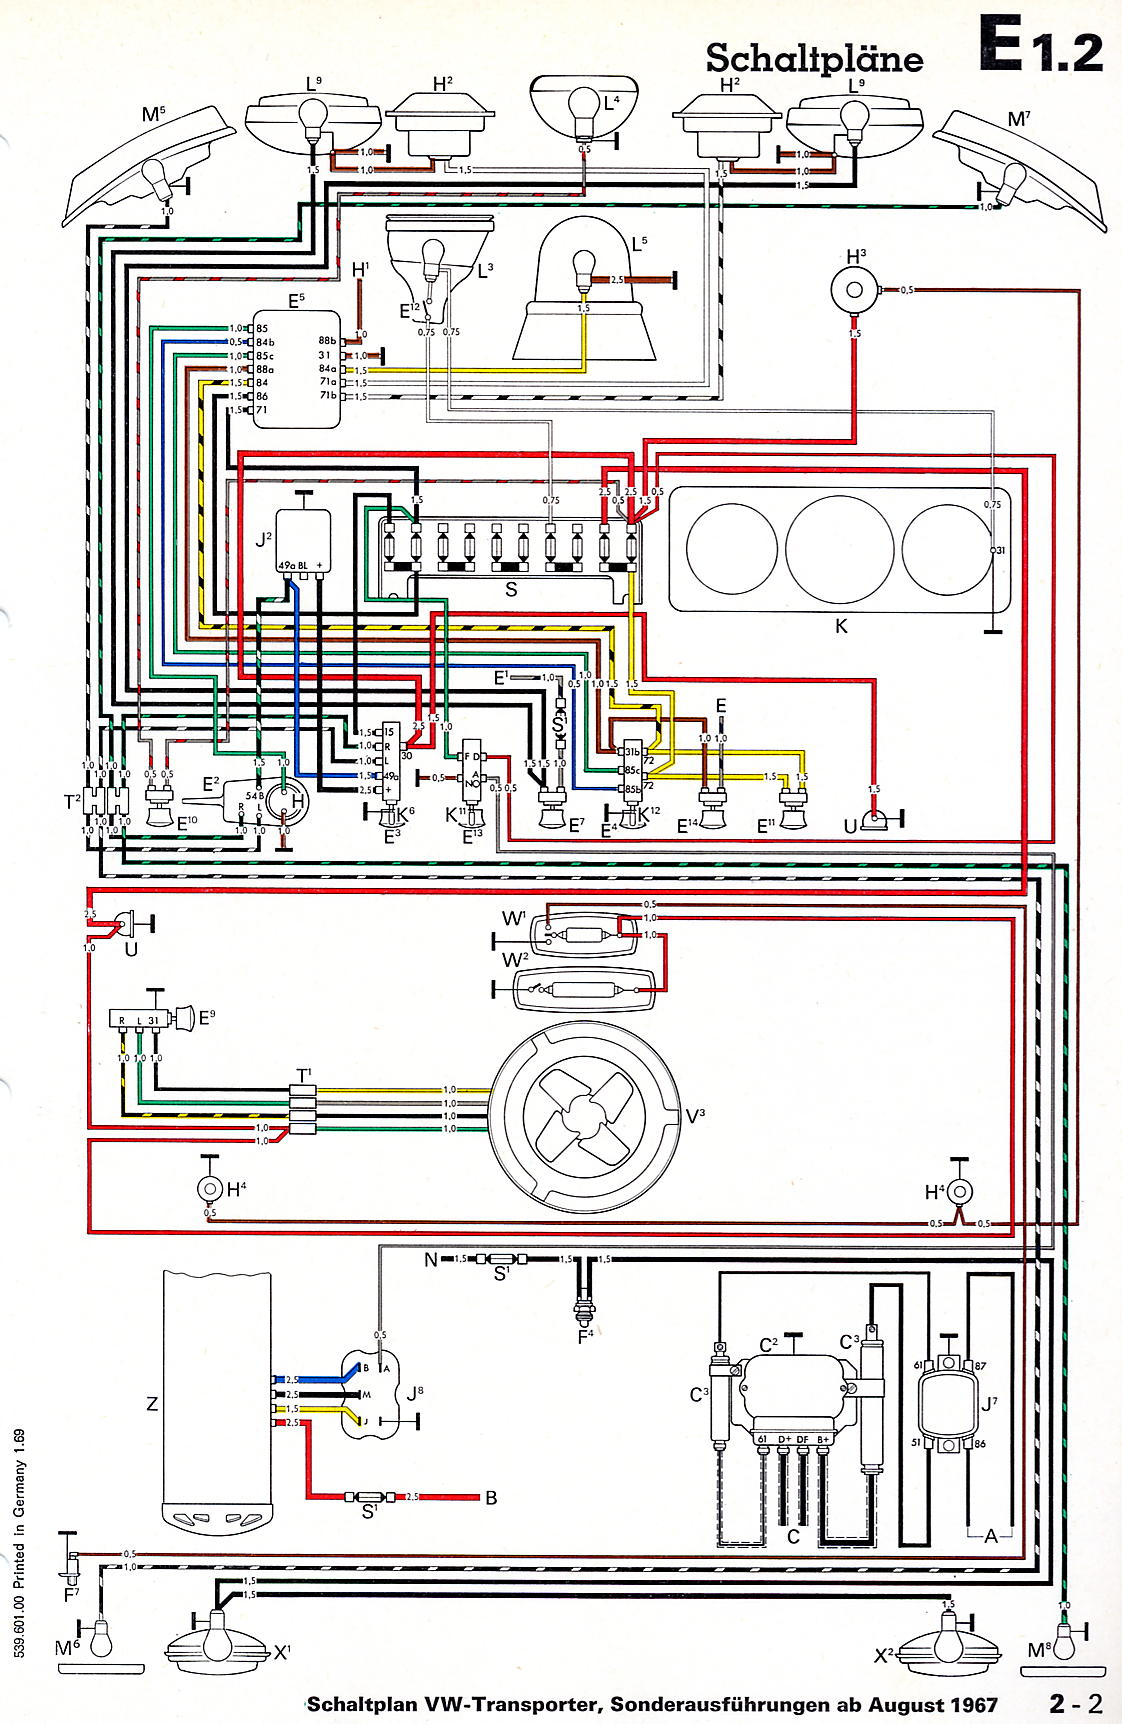 vw wiring diagrams 1972 vw beetle alternator wiring diagram 1972 volkswagen beetle wiring diagram #13